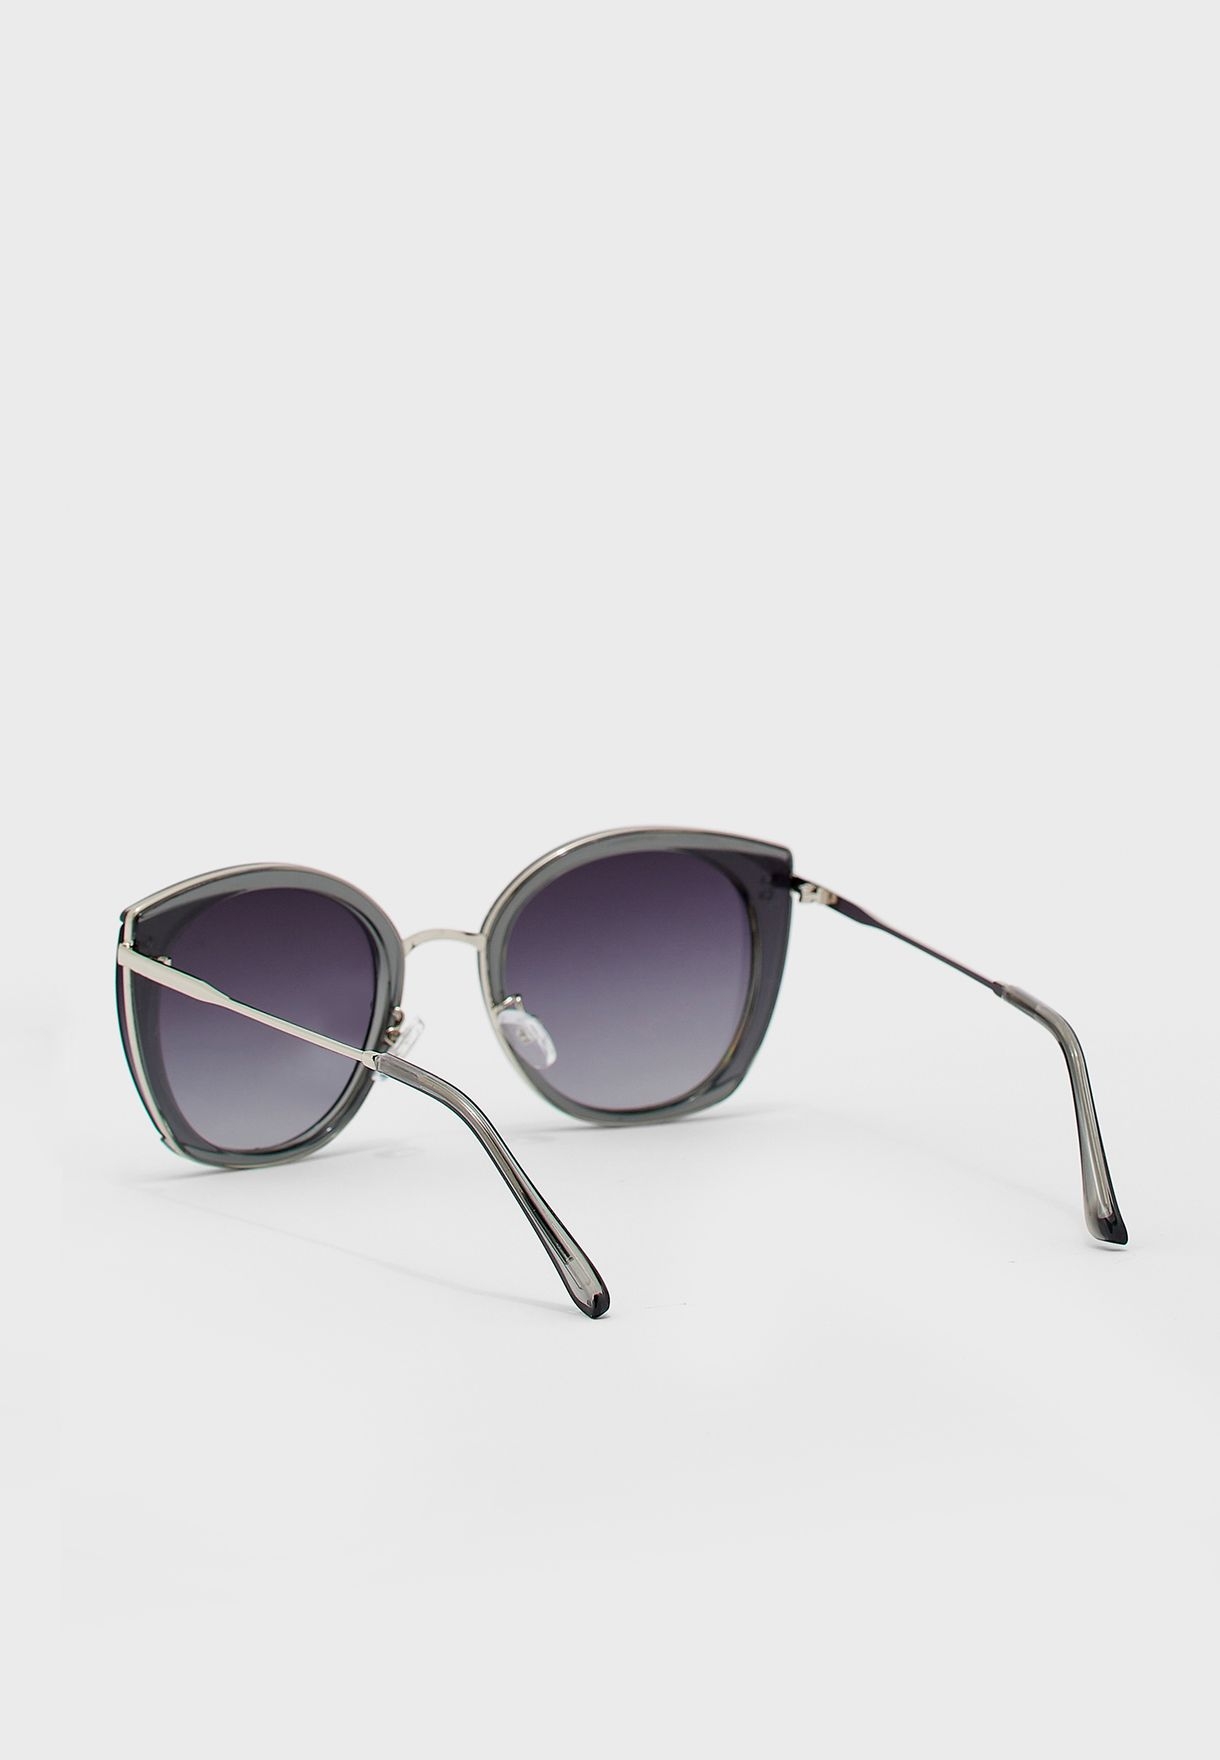 Catseye Polarized Sunglasses